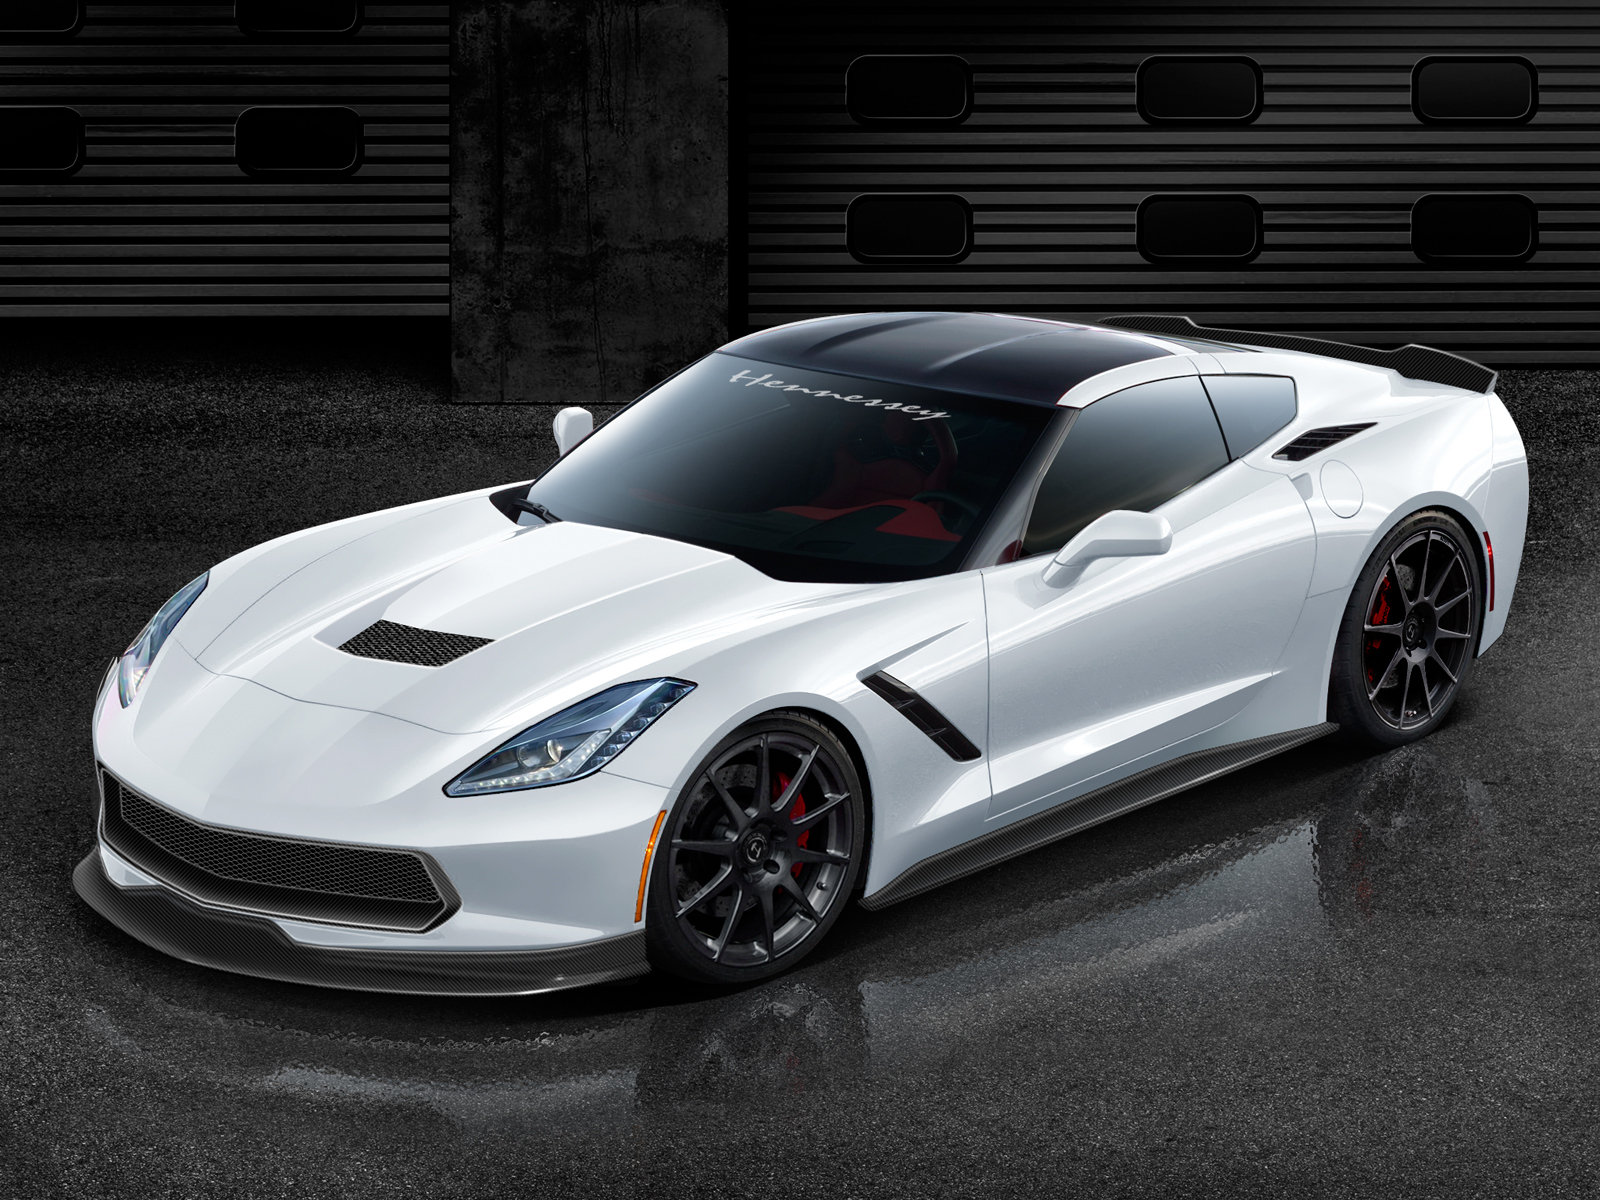 All Types Of Cars >> 2014 Chevrolet Corvette Stingray C7 By Hennessey | Top Speed